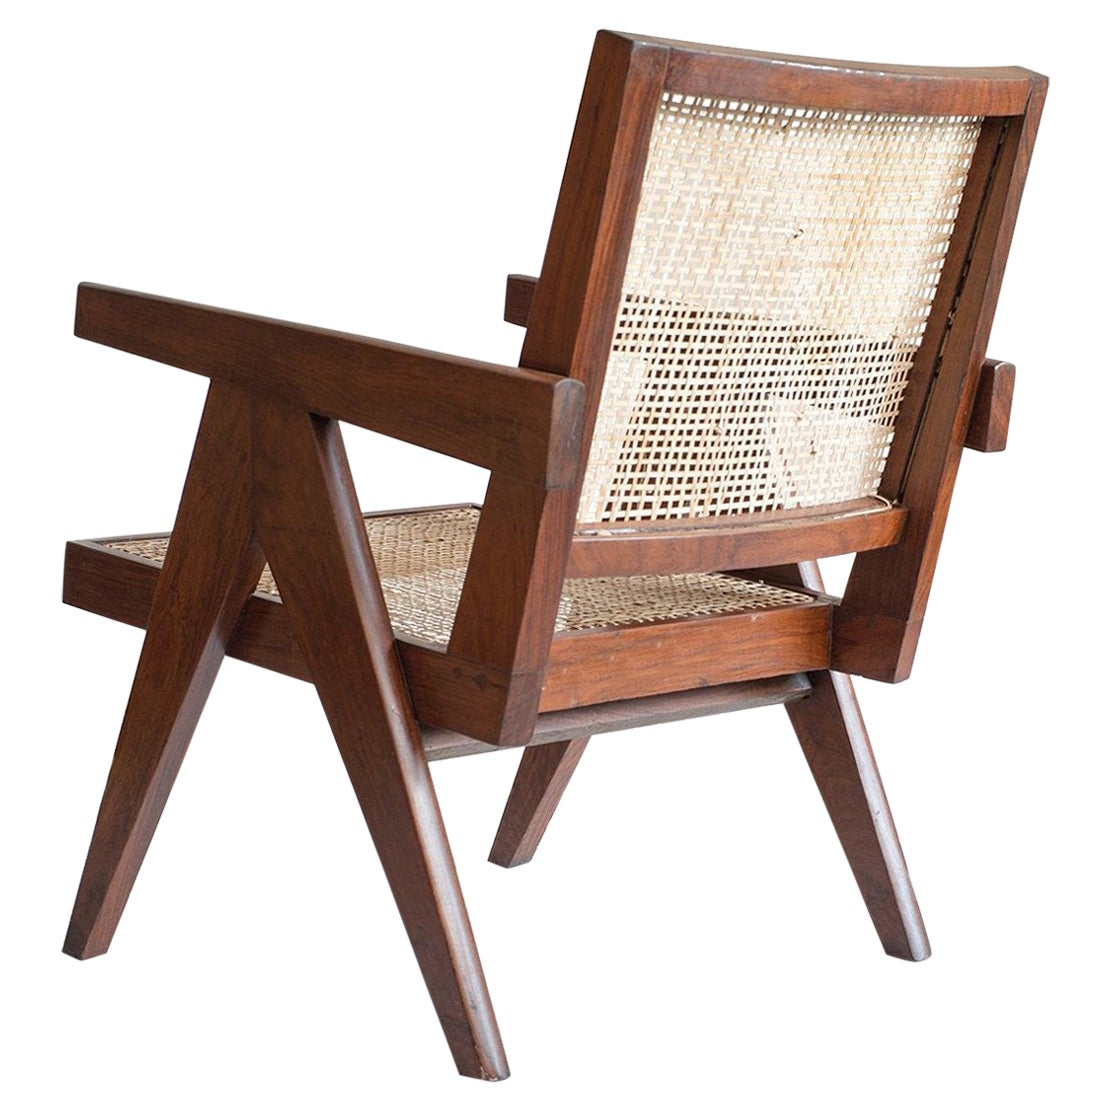 Pierre Jeanneret Authentic Easy Cane Chairs PJ-SI-29-A